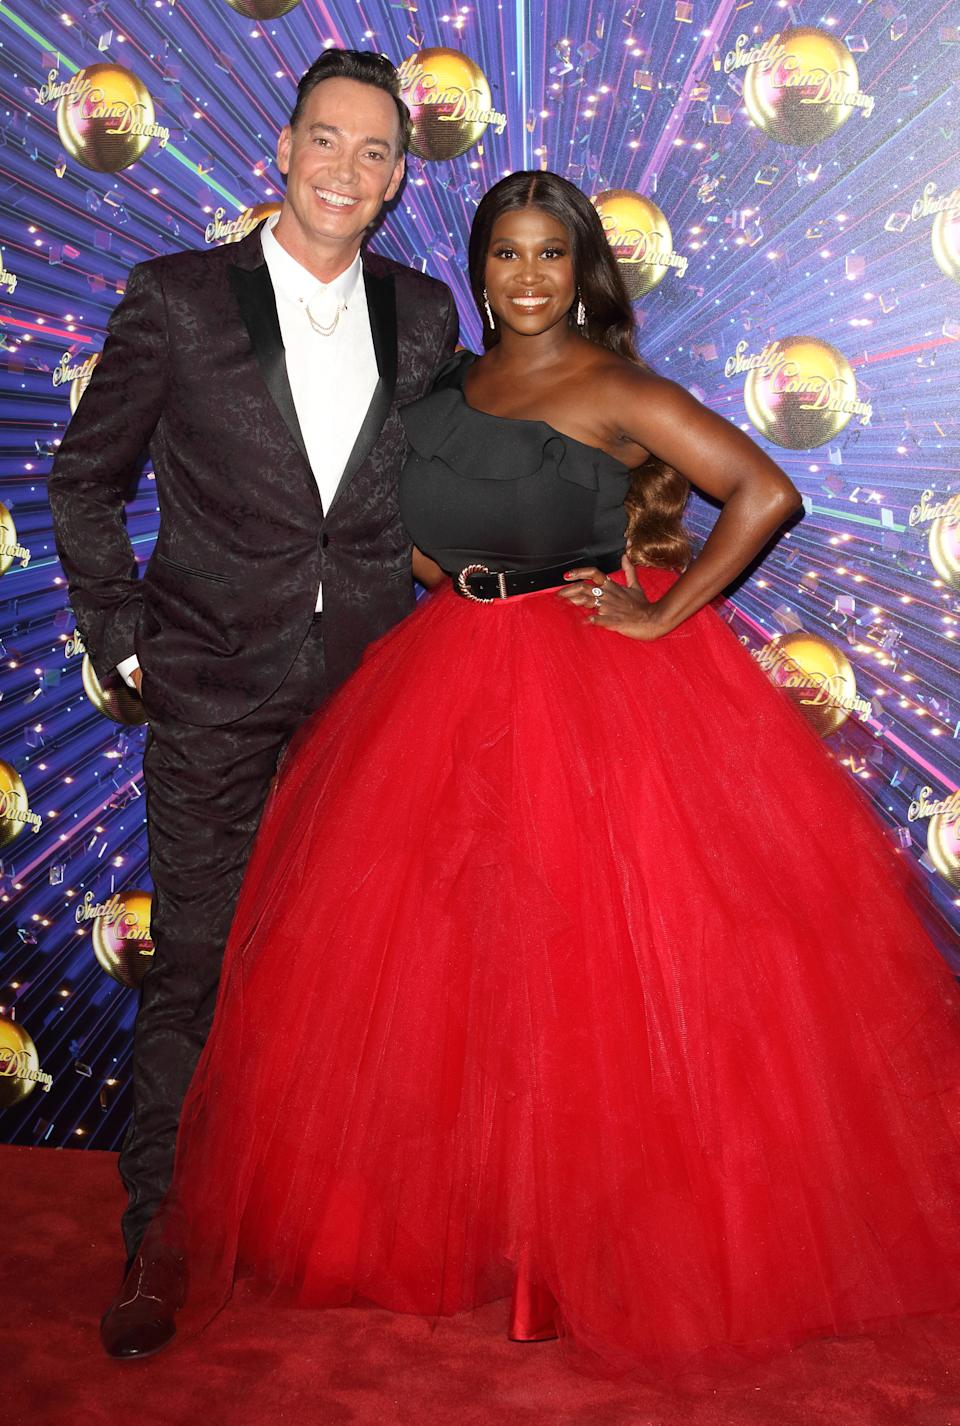 LONDON, UNITED KINGDOM - 2019/08/26: Craig Revel Horwood and Motsi Mabuse at the Strictly Come Dancing Launch at BBC Broadcasting House in London. (Photo by Keith Mayhew/SOPA Images/LightRocket via Getty Images)